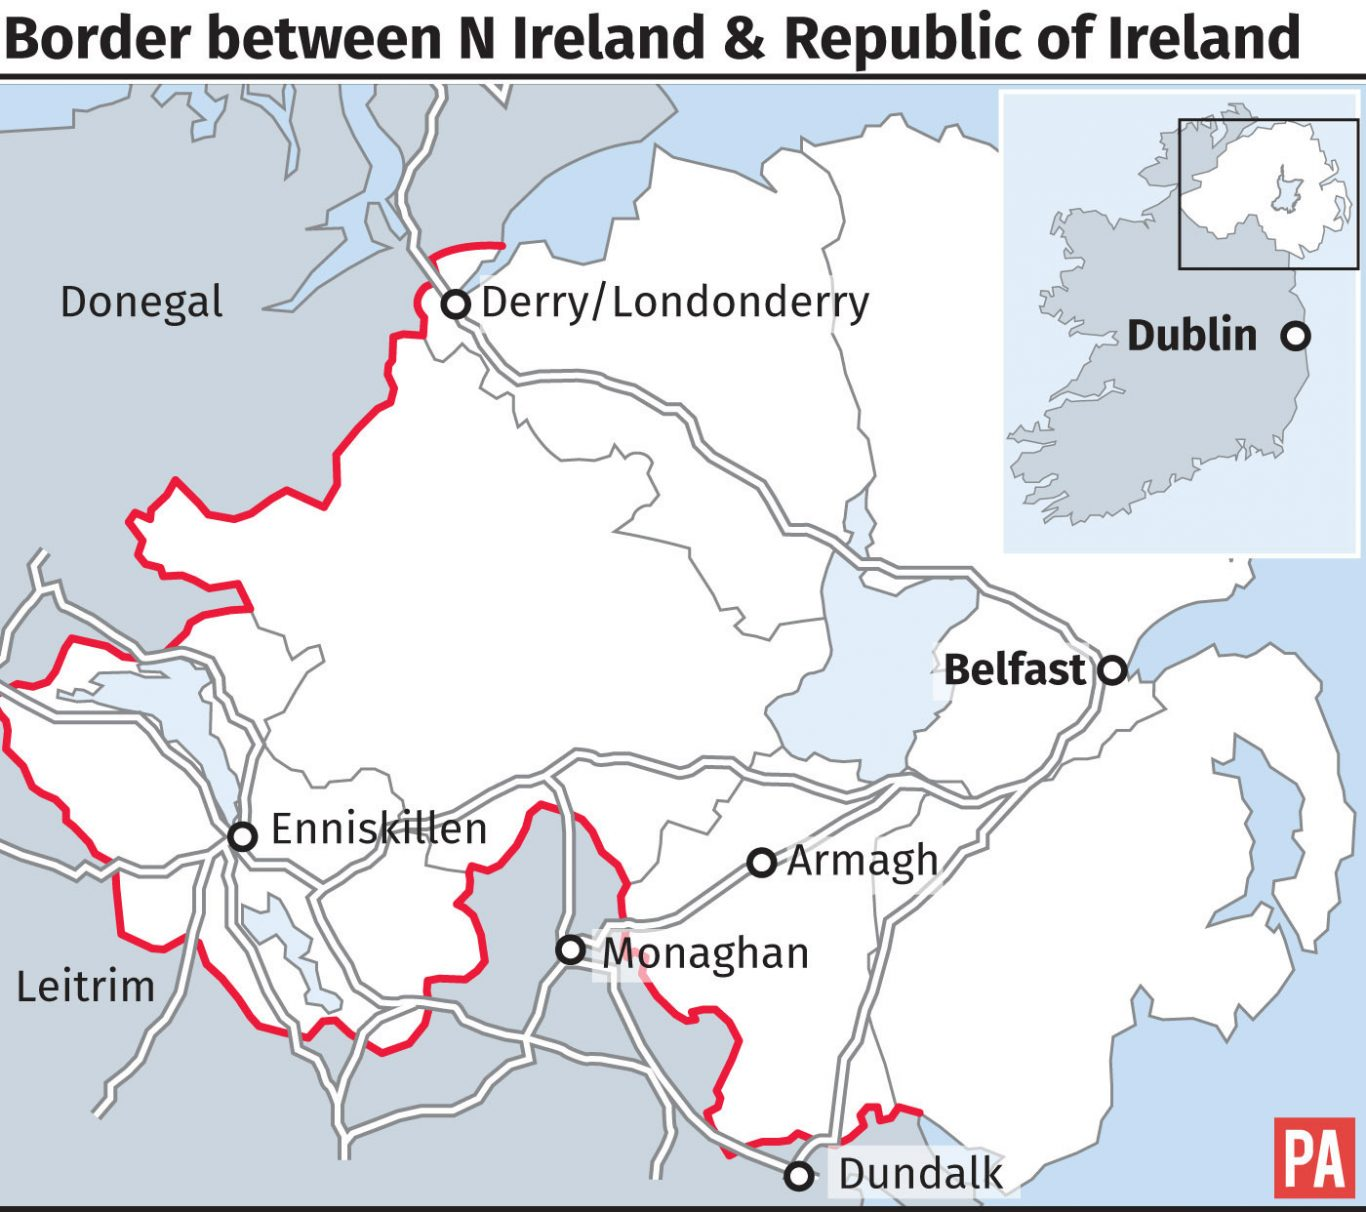 Border between N Ireland and Republic of Ireland